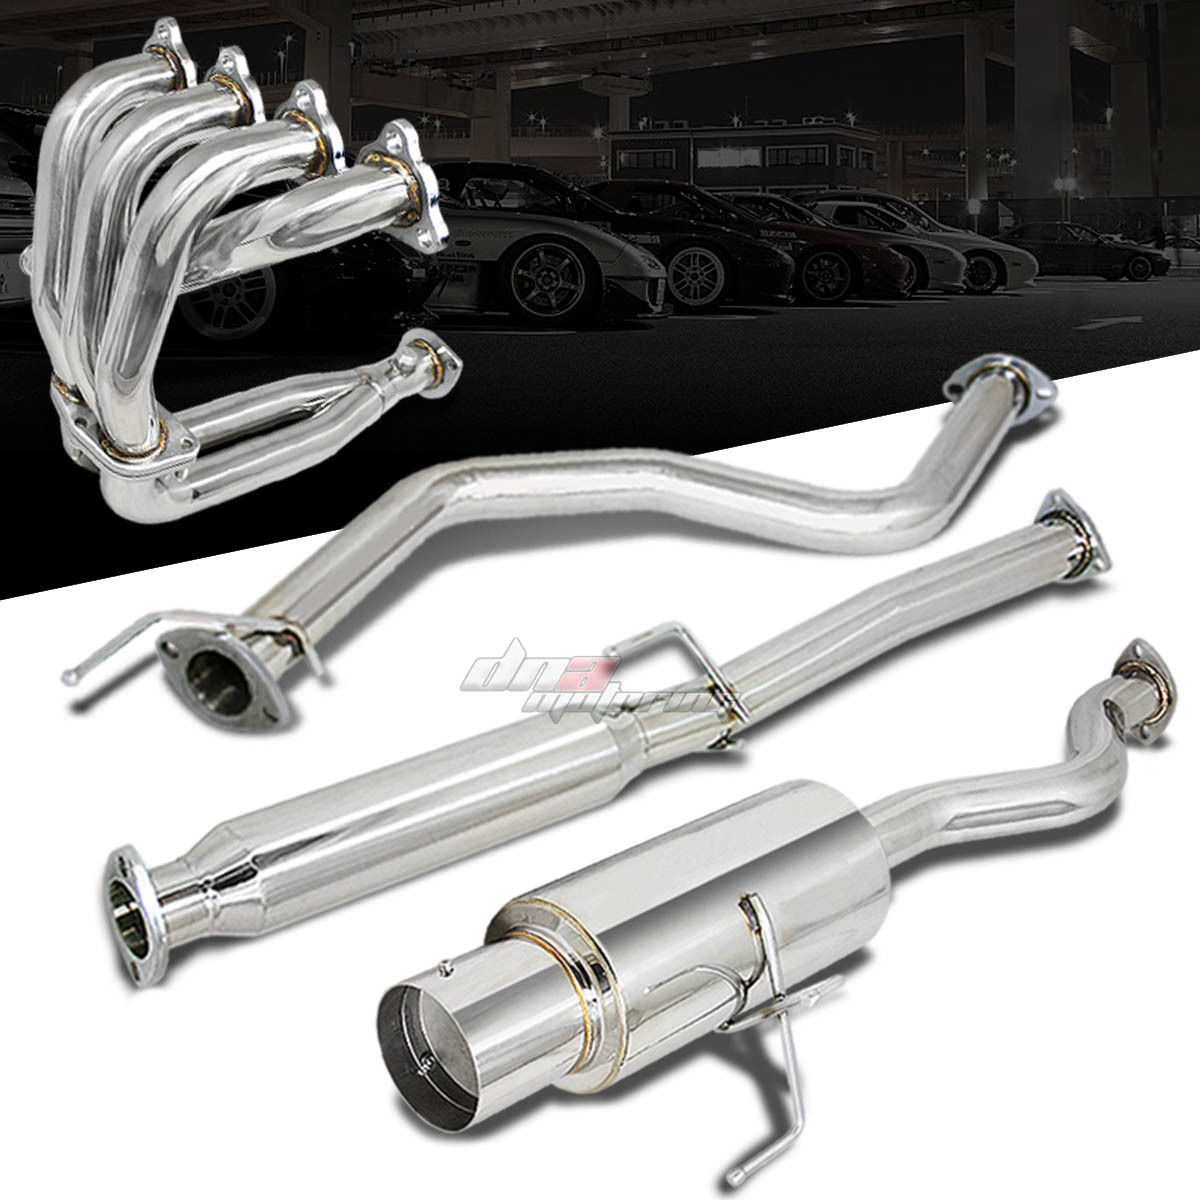 Racing 4 5 muffler tip catback exhaust header manifold for for Dna motoring exhaust civic